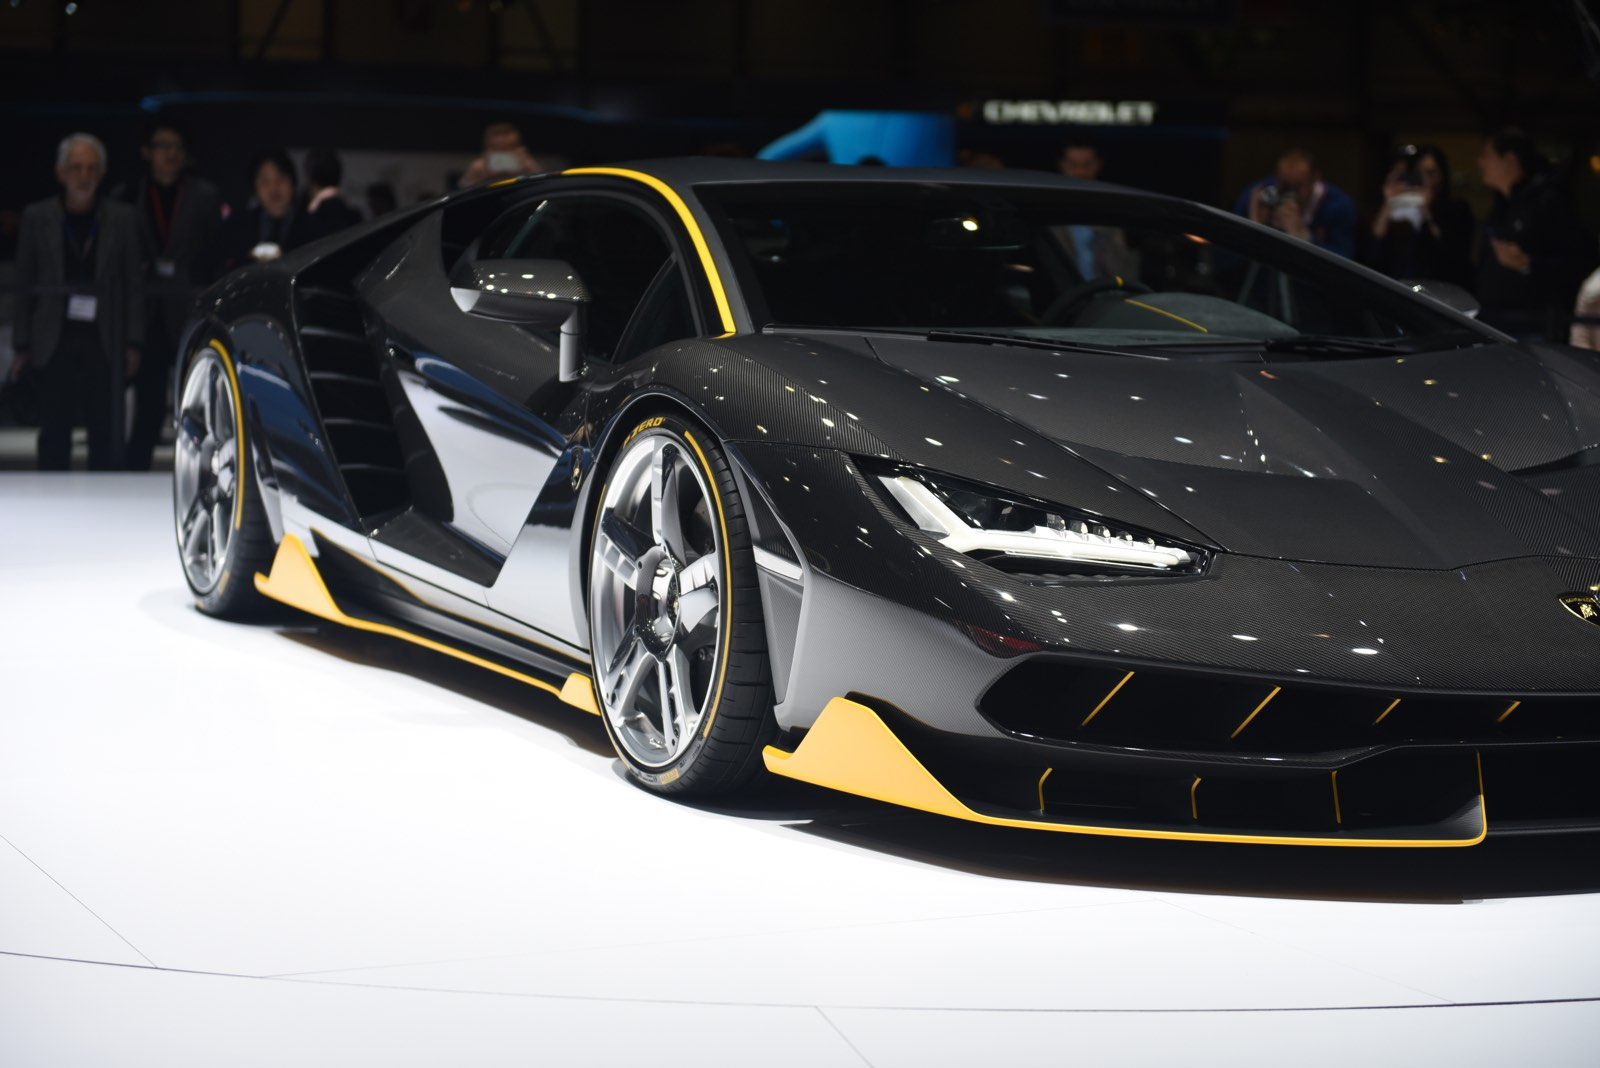 lamborghini centenario to make uk debut at salon prive. Black Bedroom Furniture Sets. Home Design Ideas